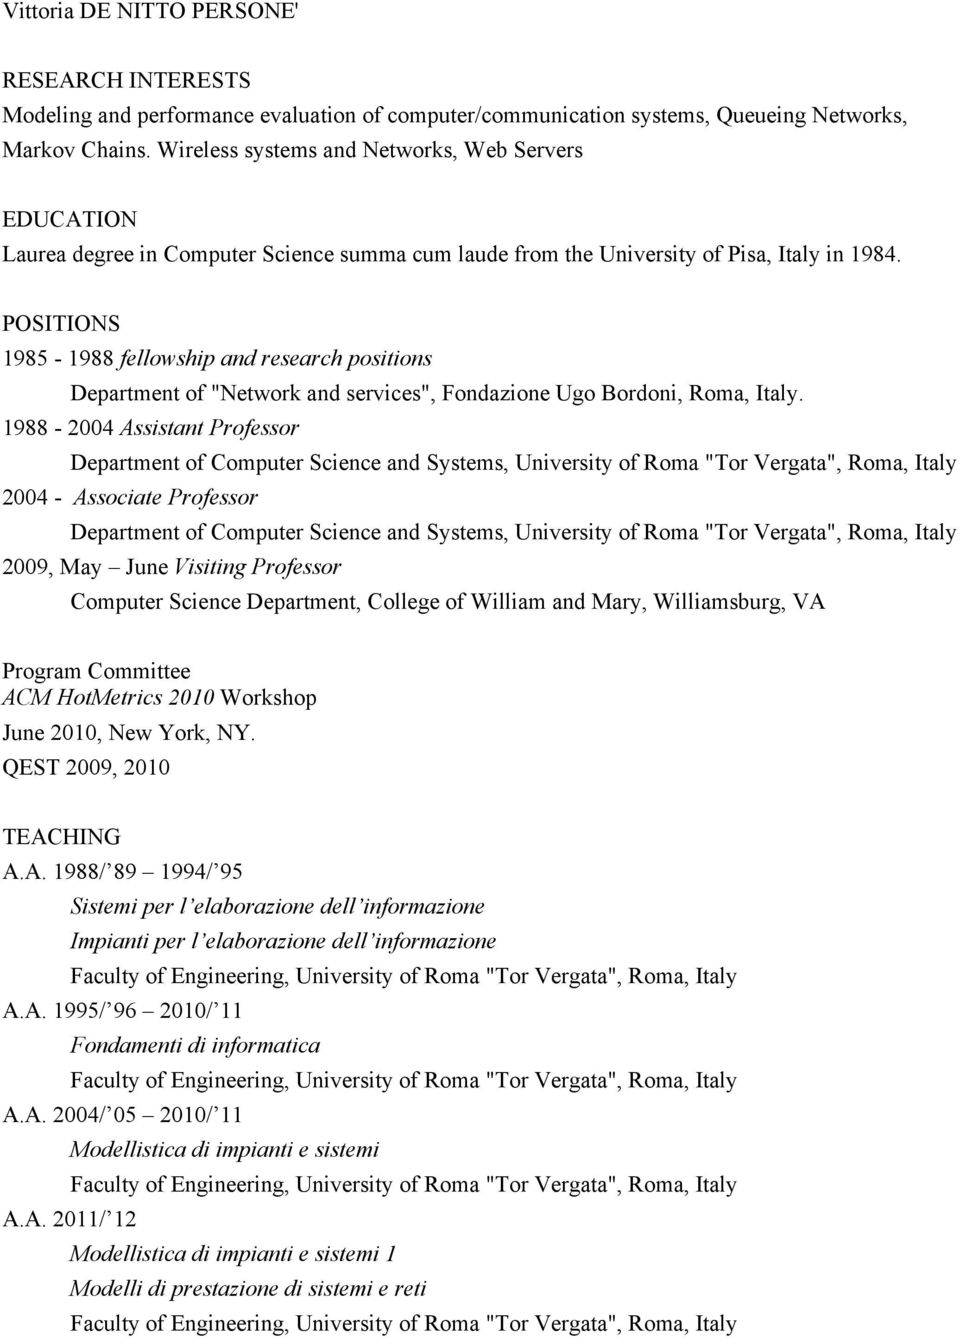 "POSITIONS 1985-1988 fellowship and research positions Department of ""Network and services"", Fondazione Ugo Bordoni, Roma, Italy."